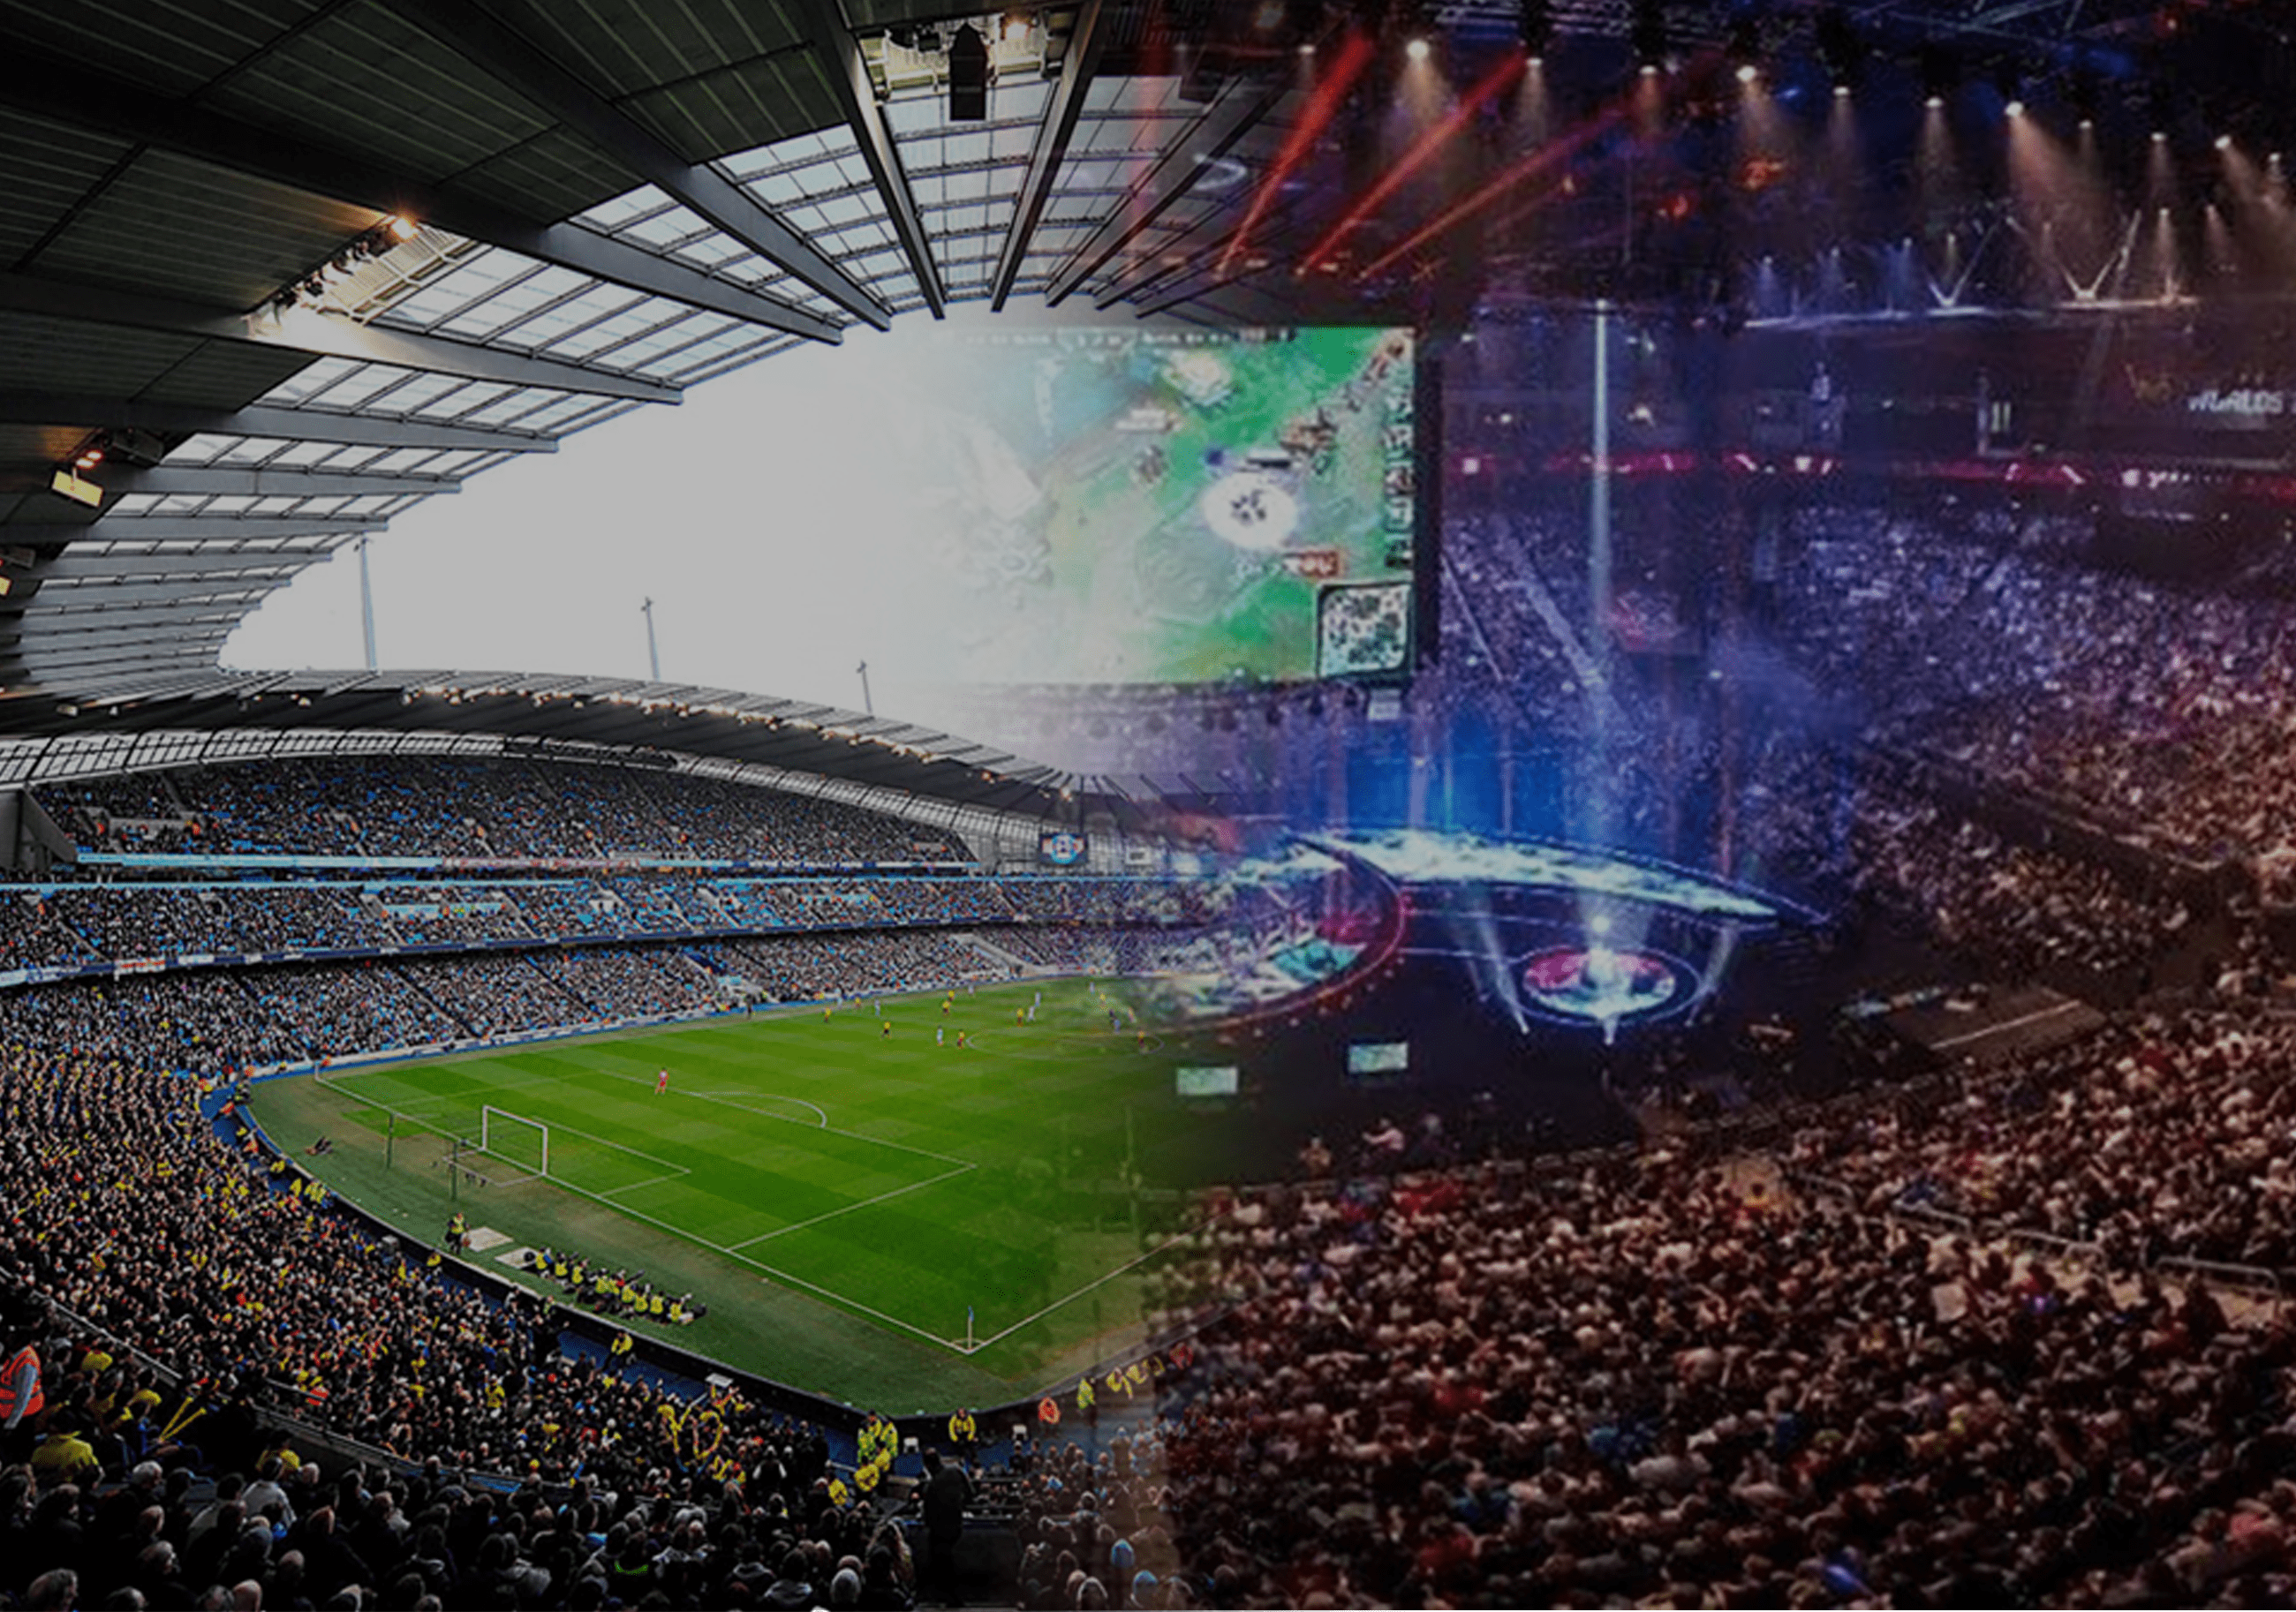 Banner for article titled - eSports taking over regular sports – The Future of Gaming